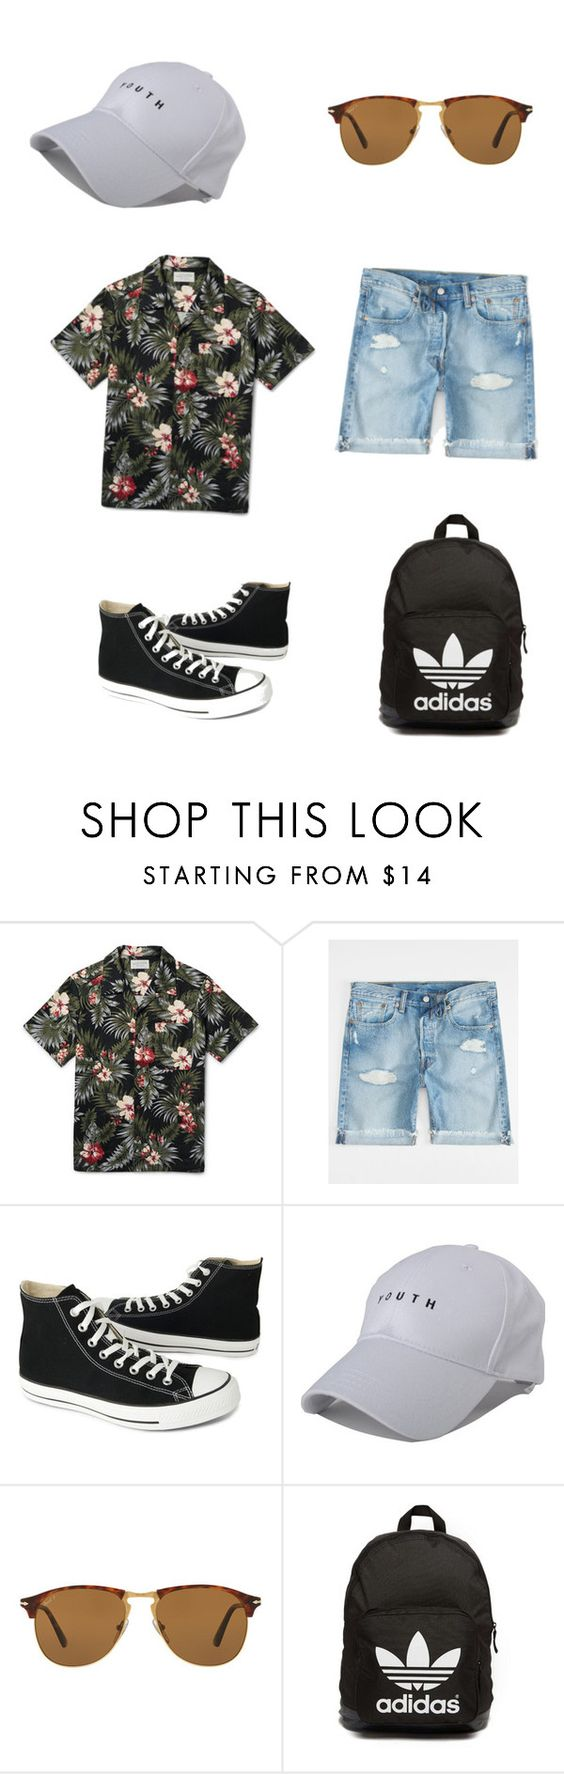 """For men"" by theavalseth ❤ liked on Polyvore featuring Levi's, Converse, Persol, adidas Originals, men's fashion and menswear"